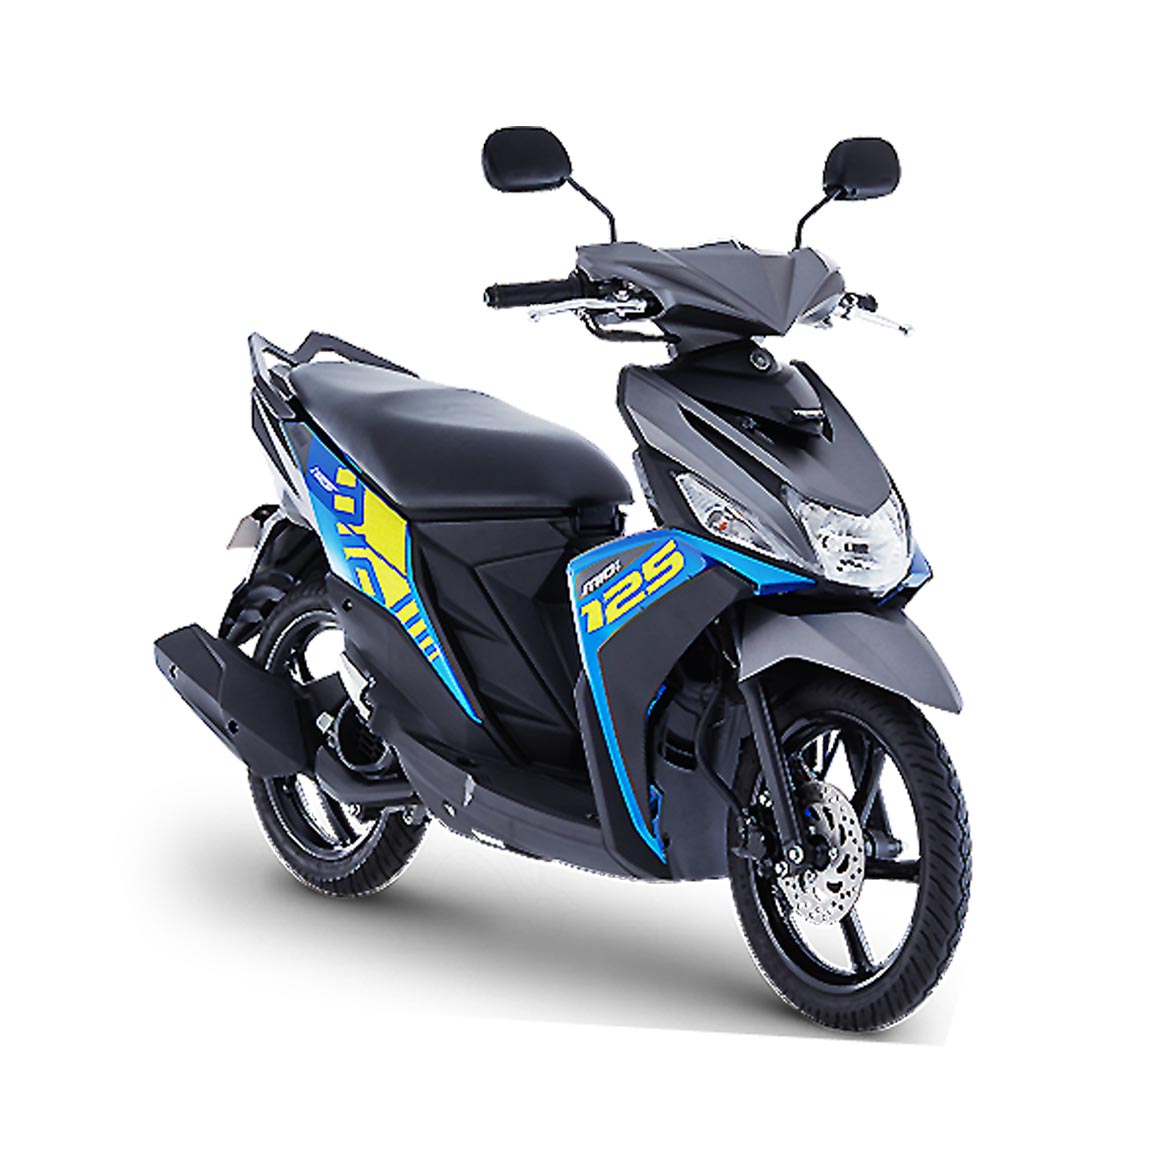 yamaha scooter mio i125 i rent a scooter motorcycle in palawan. Black Bedroom Furniture Sets. Home Design Ideas